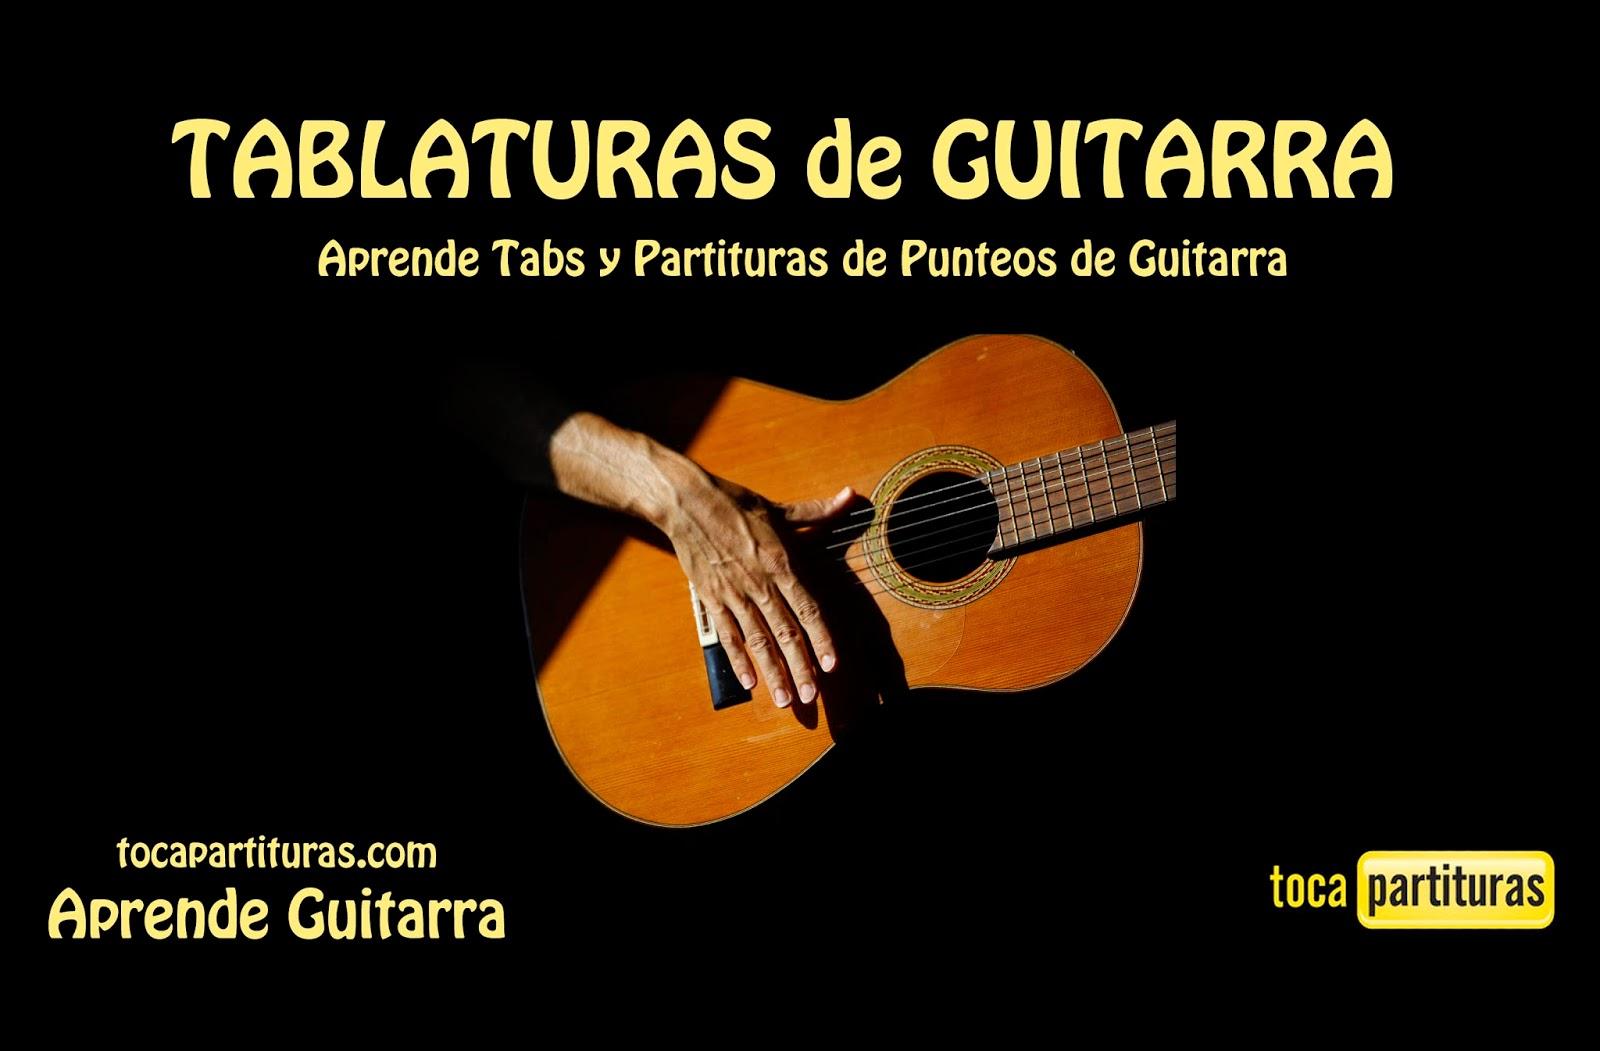 Oh When the Saints Partitura Dúo de Guitarras Popular en Estados Unidos Sheet Music for two guitars